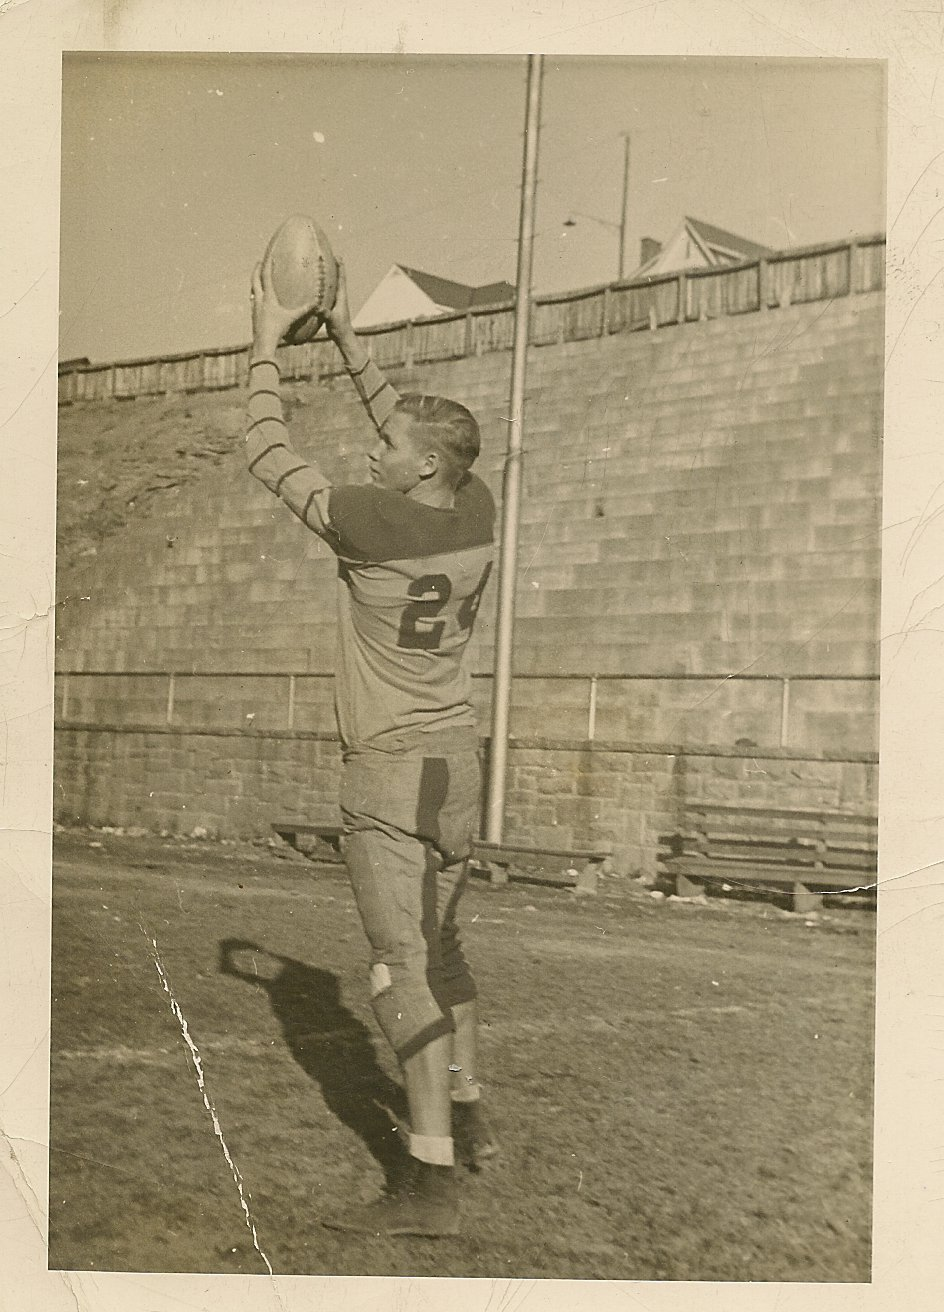 James Bender, Mount Hope High School football player, 1941